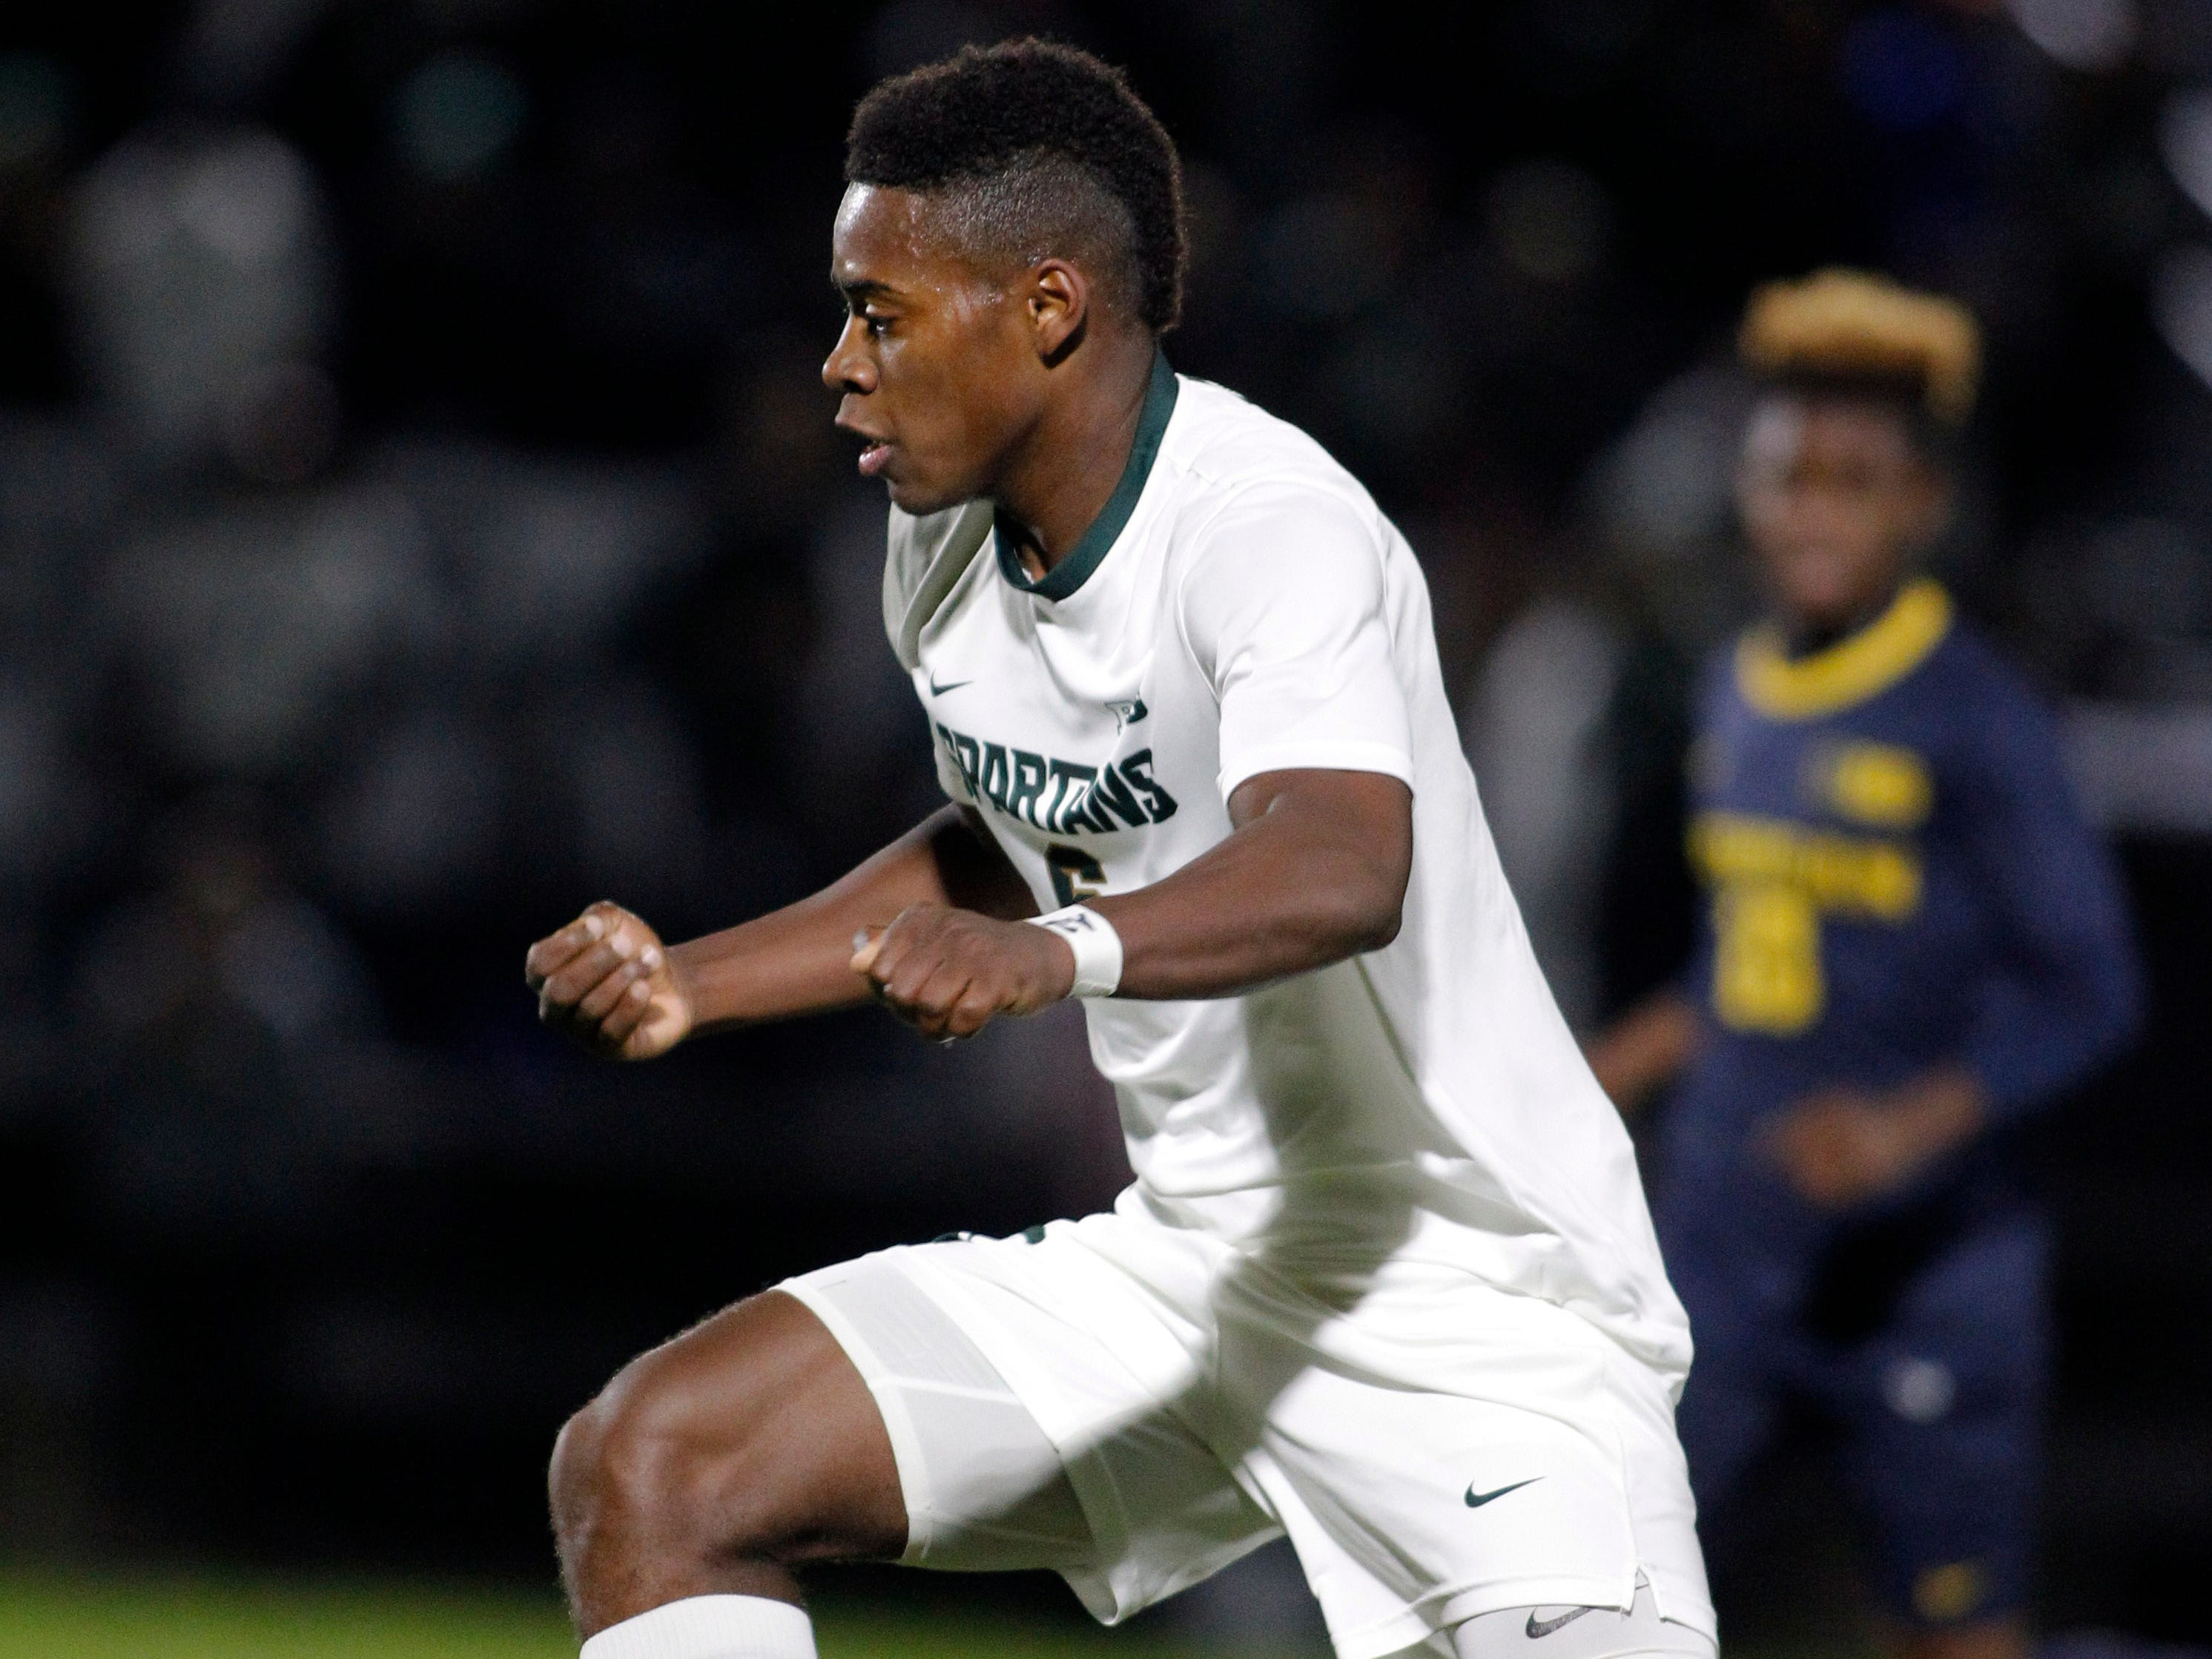 Michigan State's DeJuan Jones attacks against Michigan, Tuesday, Oct. 23, 2018, in East Lansing, Mich. The teams played to a 1-1 draw.